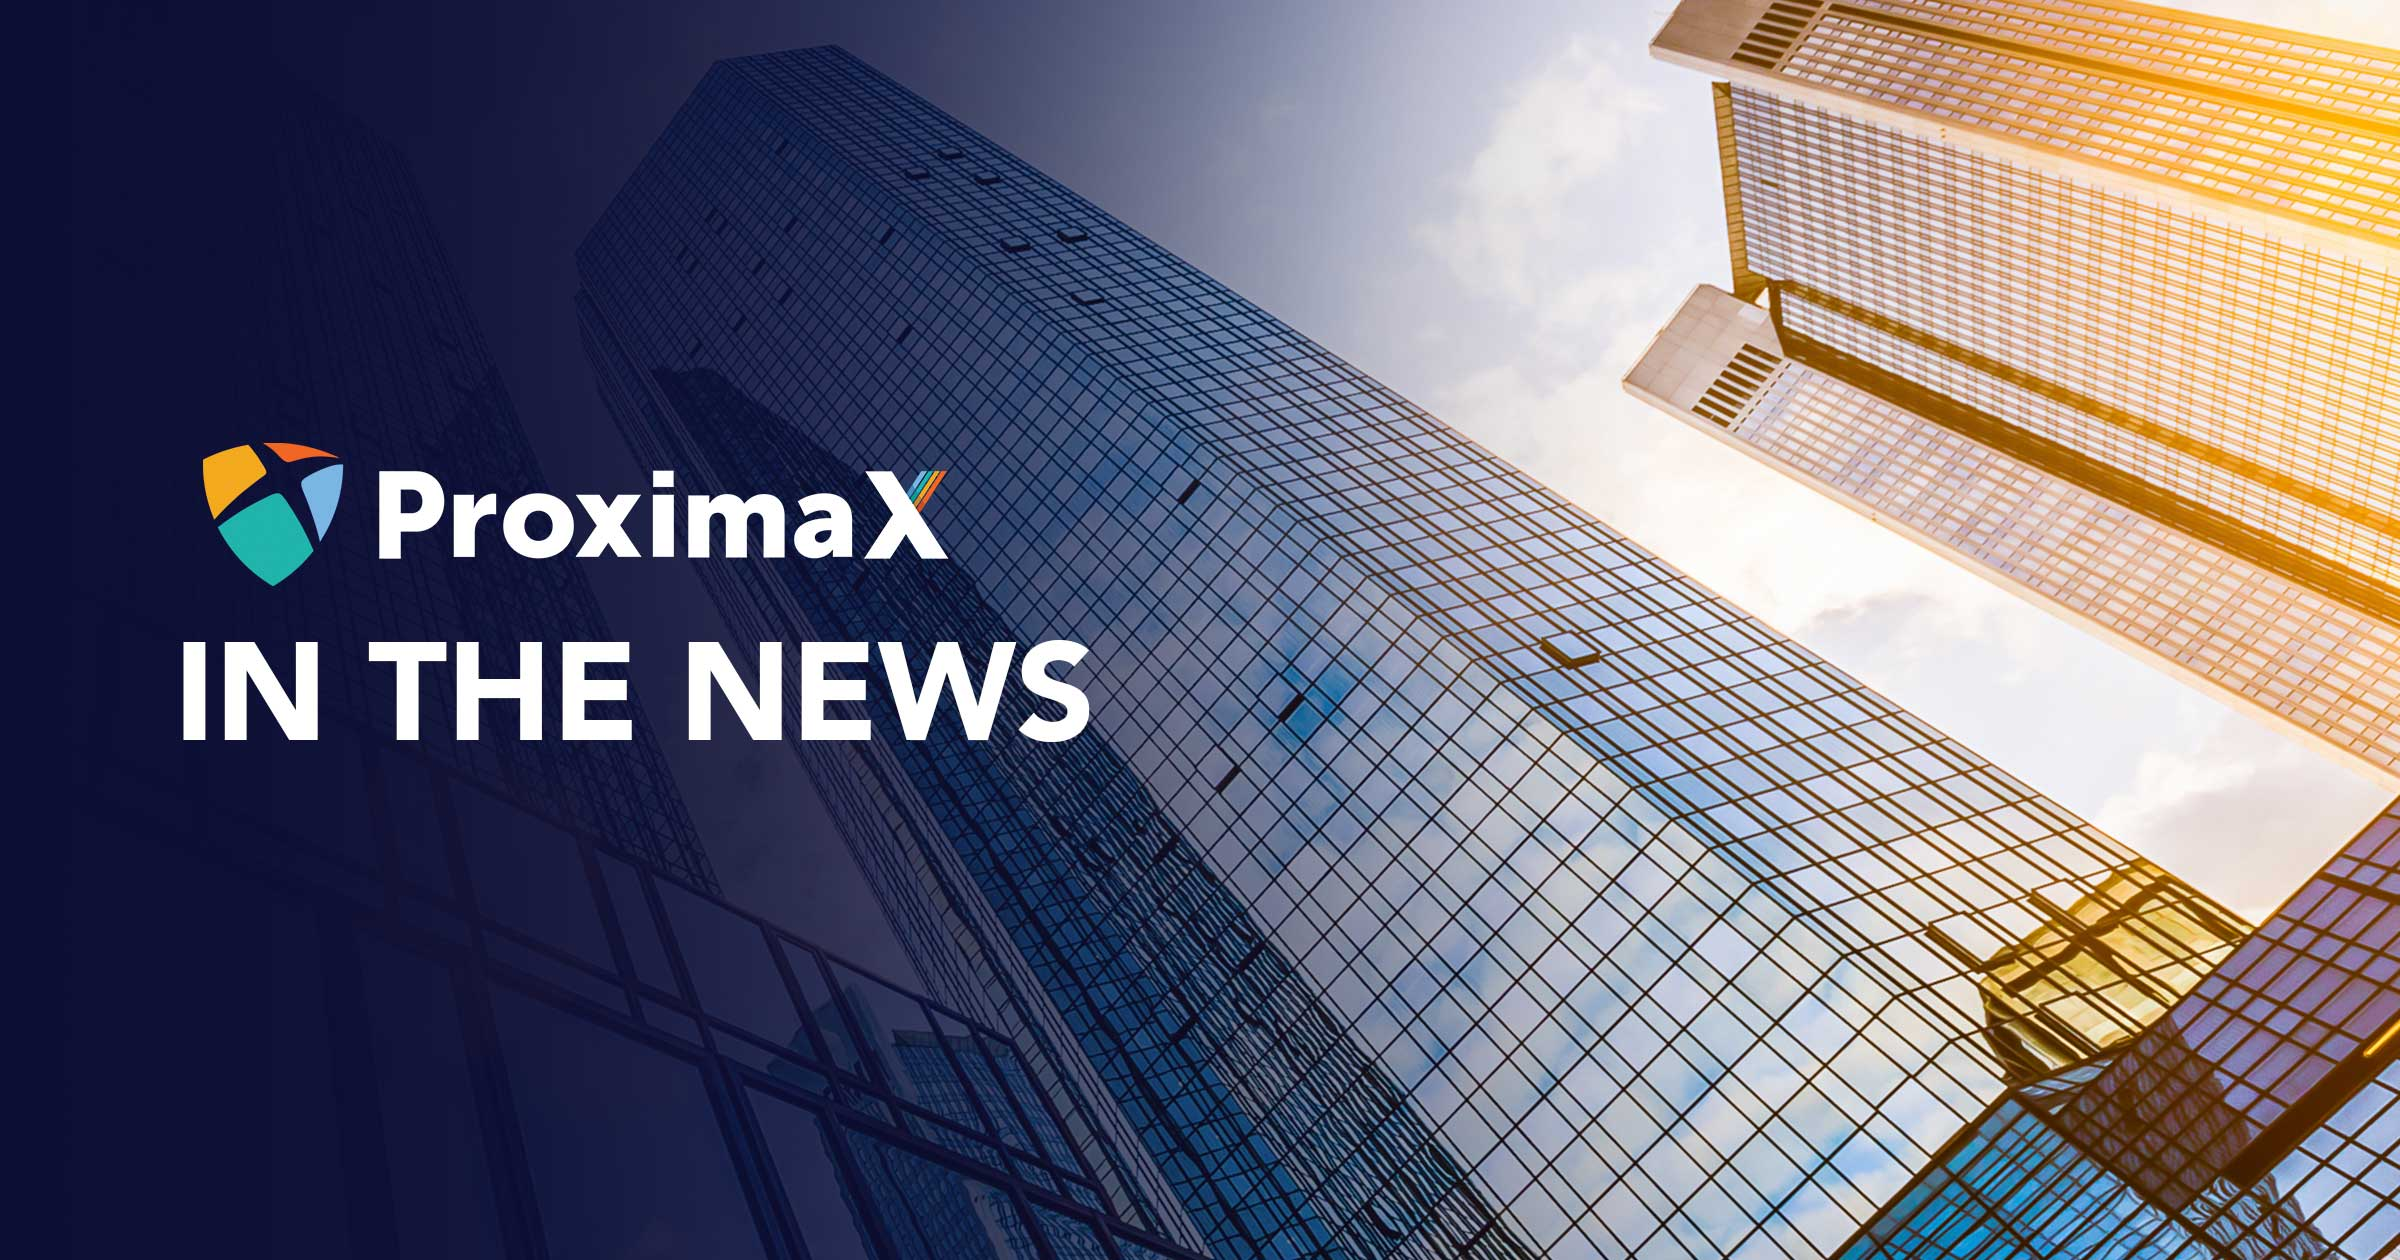 ProximaX In The News!